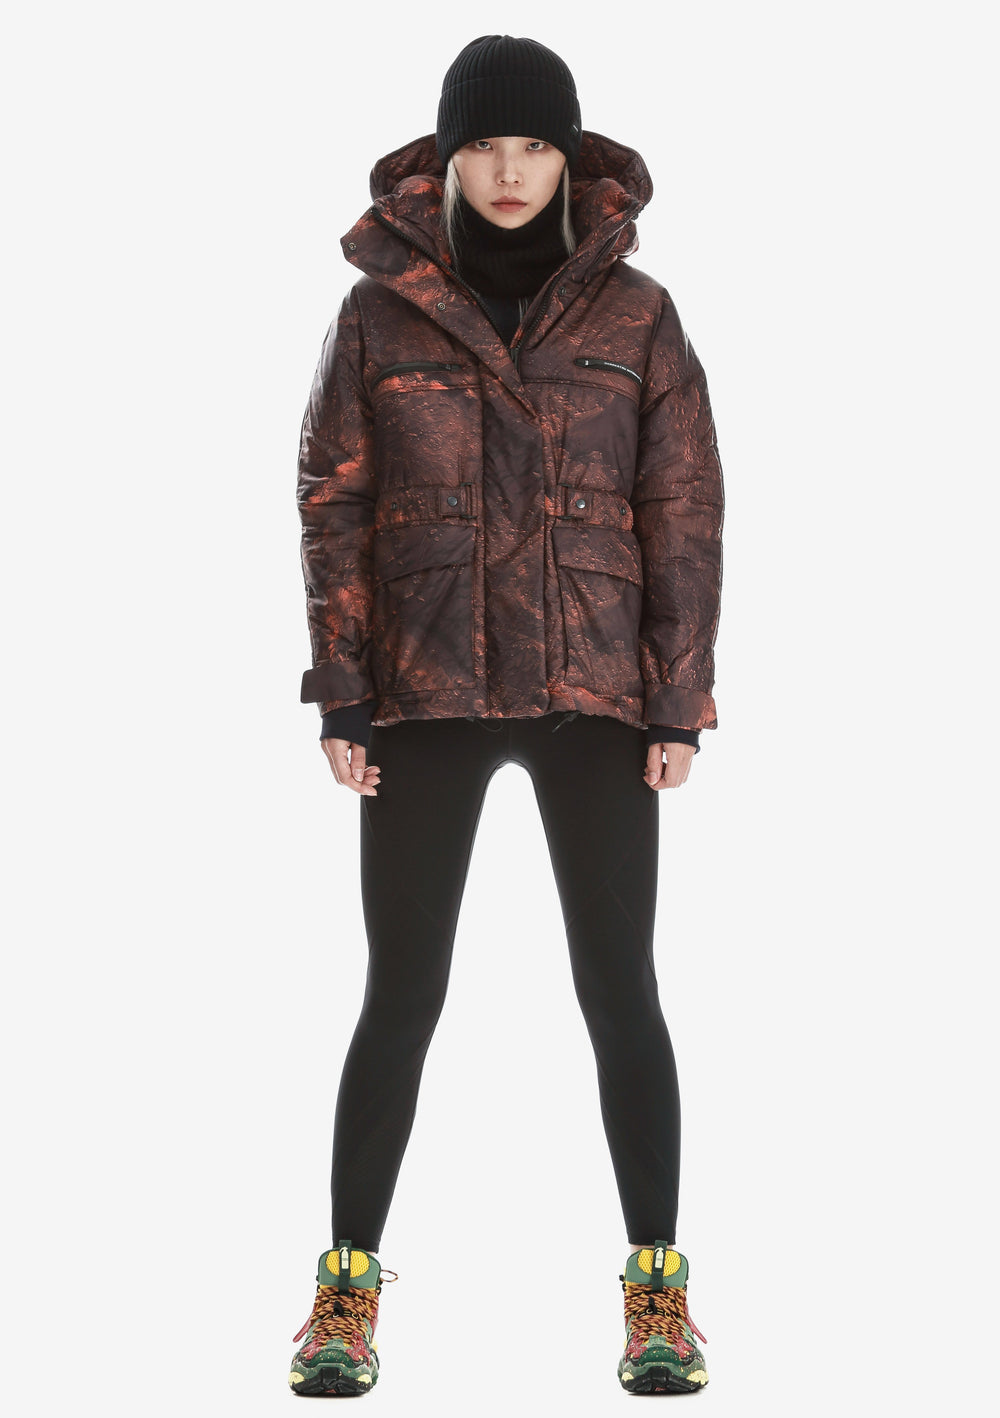 Removable Hood Padded Jacket Qw260-96 LARSEN